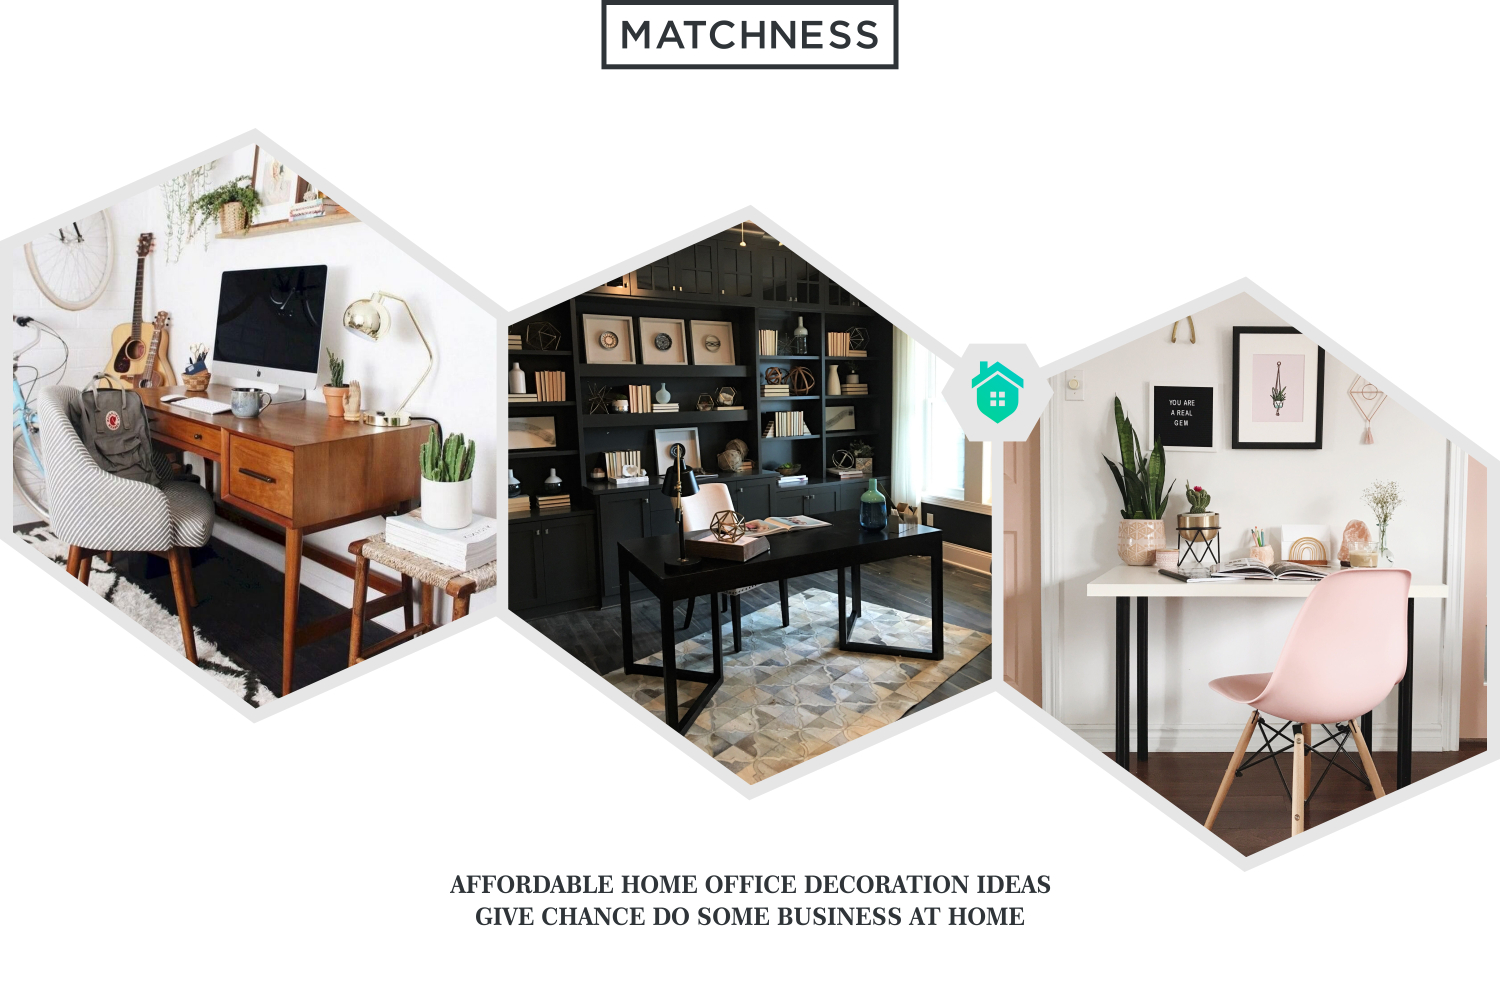 36 Affordable Home Office Decoration Ideas To Give You Chance Do Some Business At Matchness Com